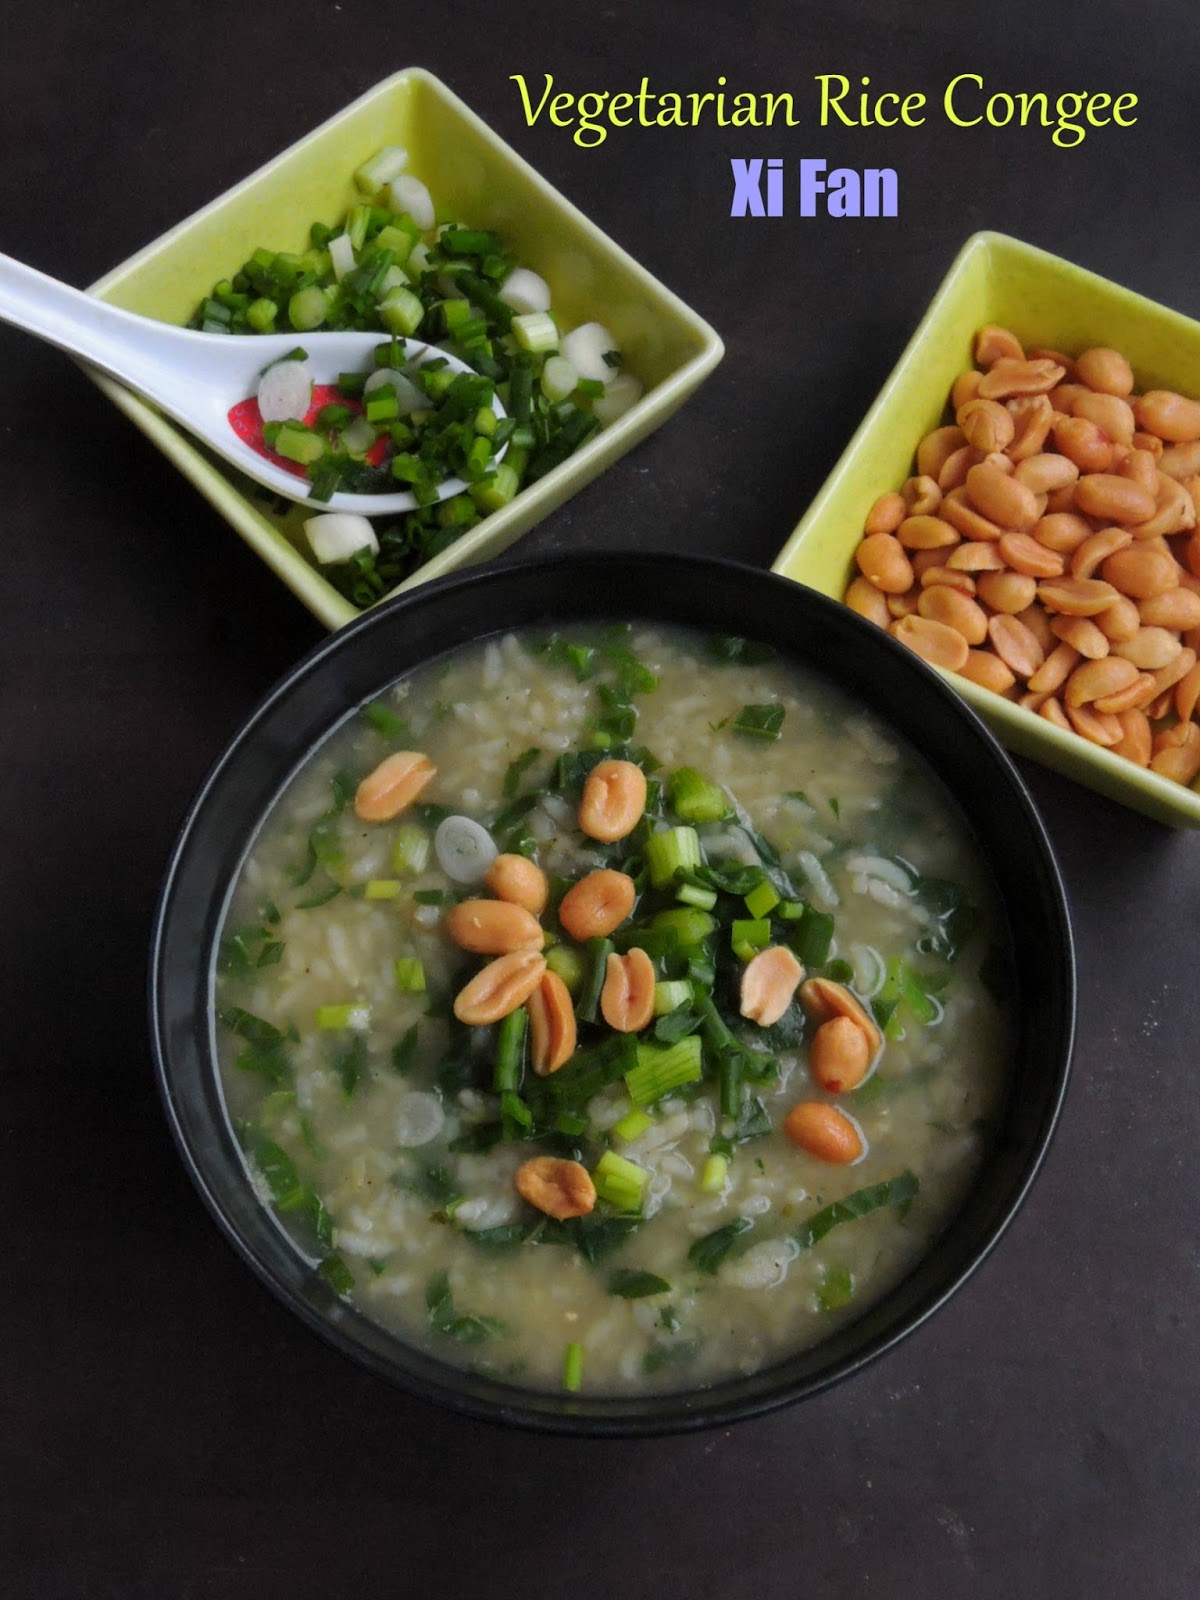 ... : Chinese Vegetarian Rice Congee/Brown Rice & Gai Lan Jook/Xi Fan